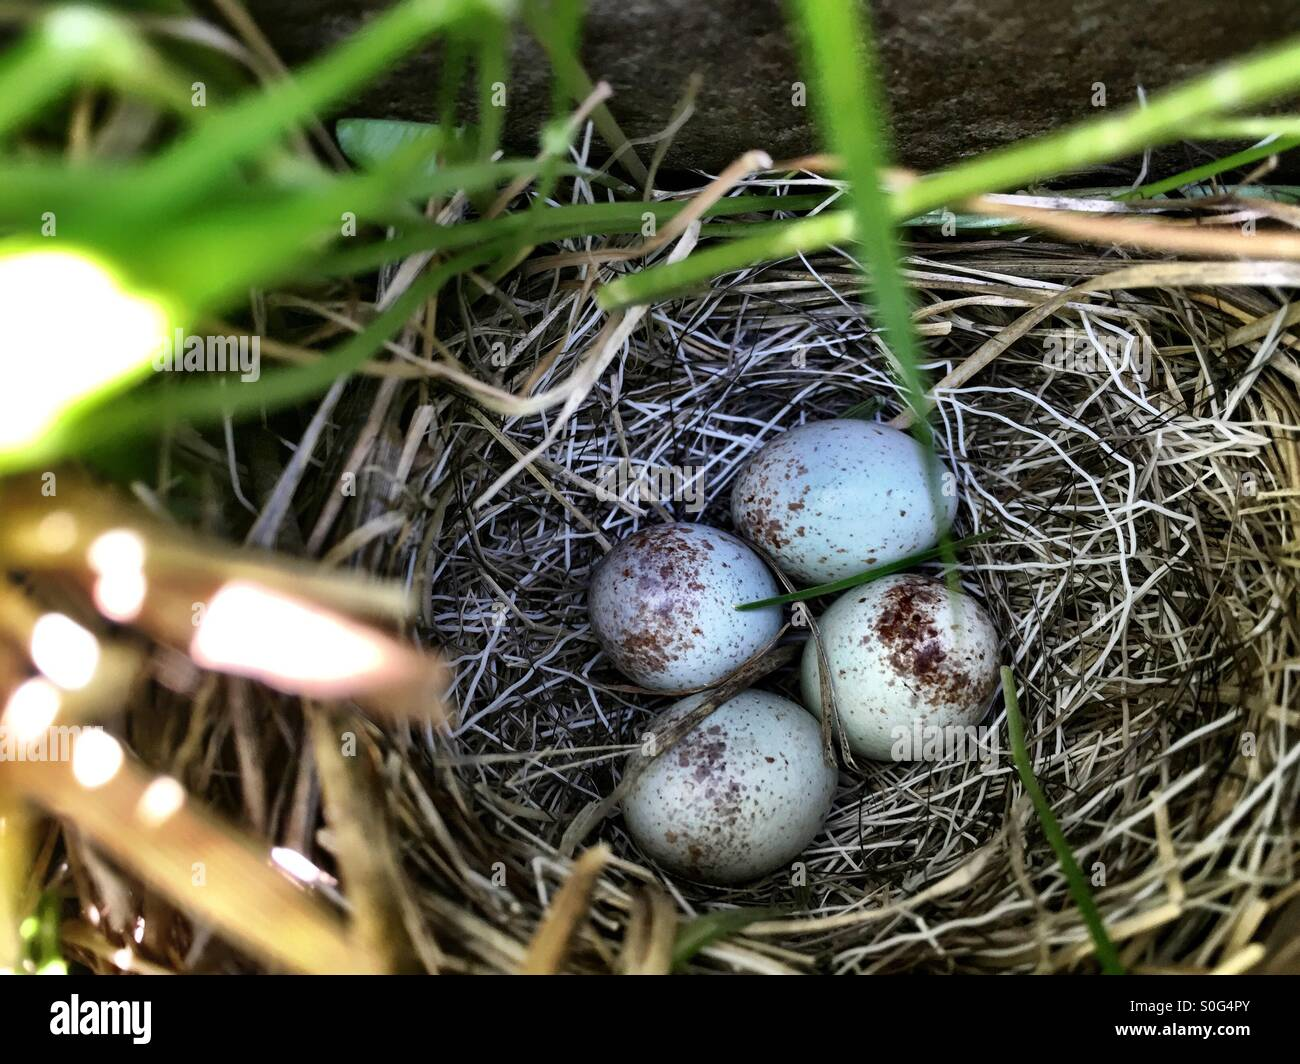 Small best filled with four specked bird eggs. - Stock Image